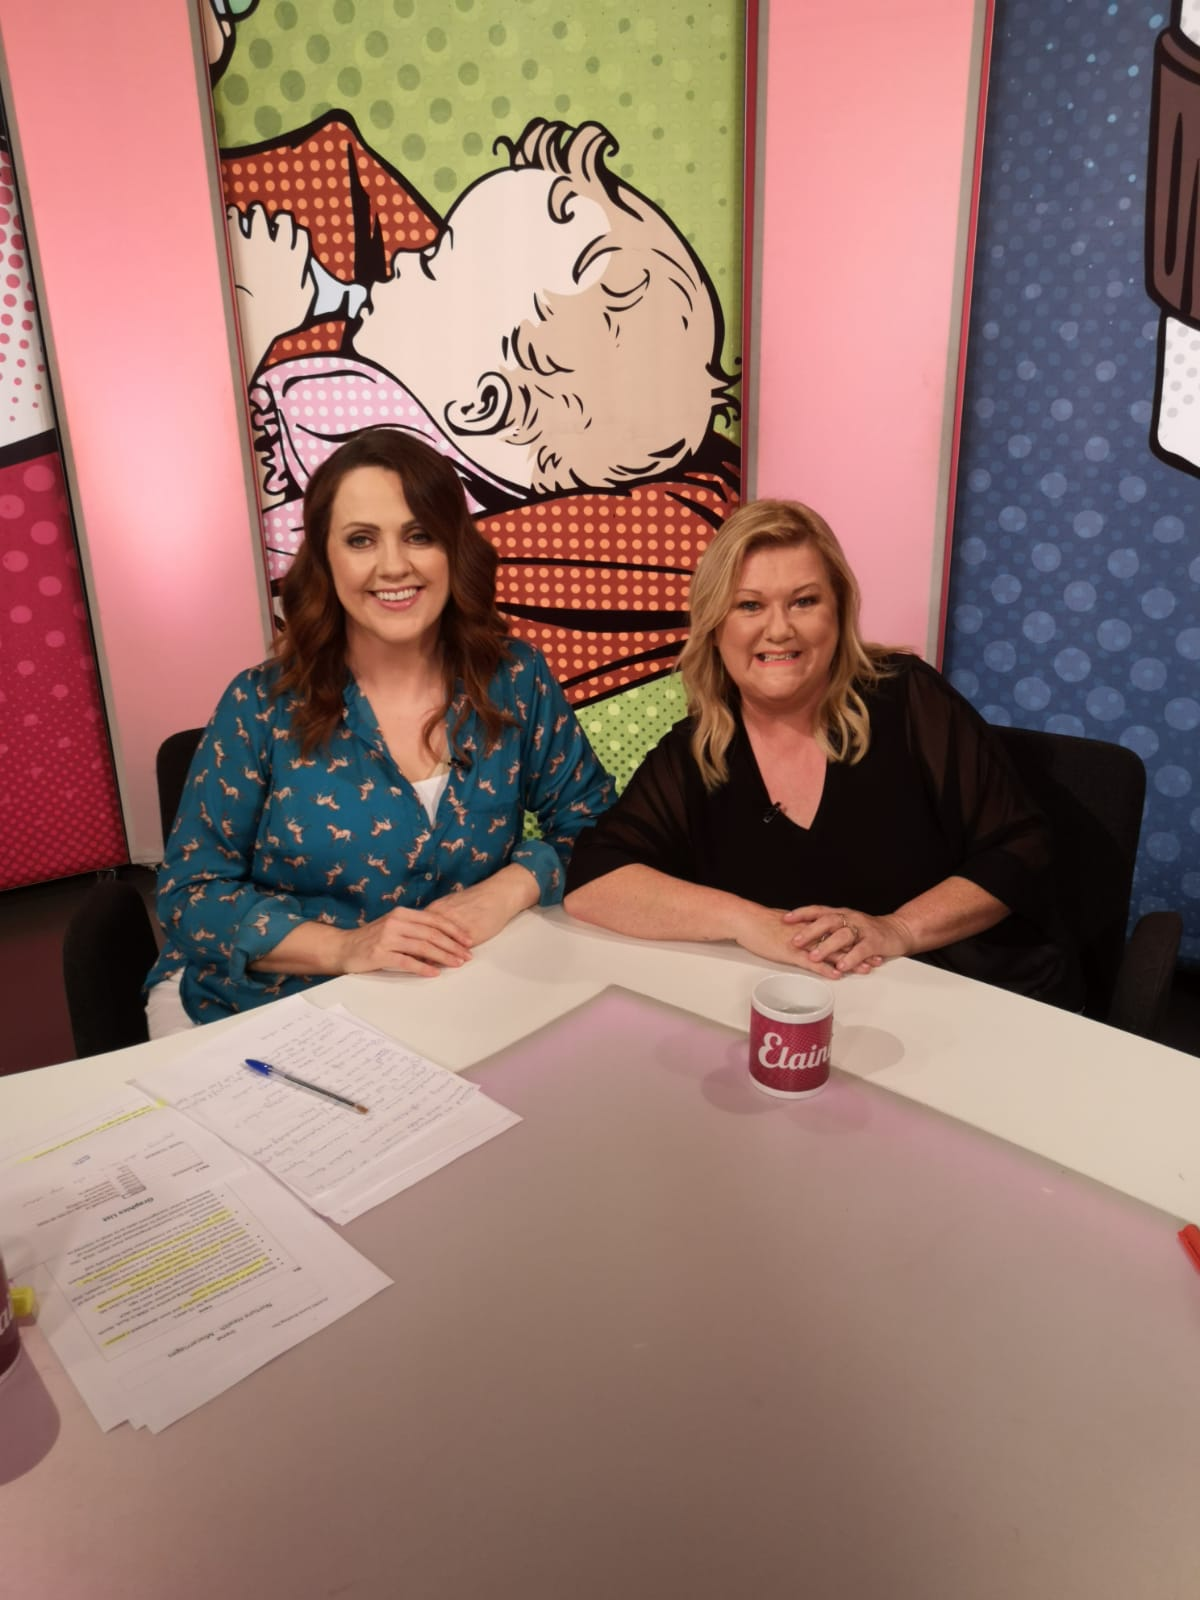 Irene Lowry talking about Miscarriage on The Elaine TV Show with Ruth Scott